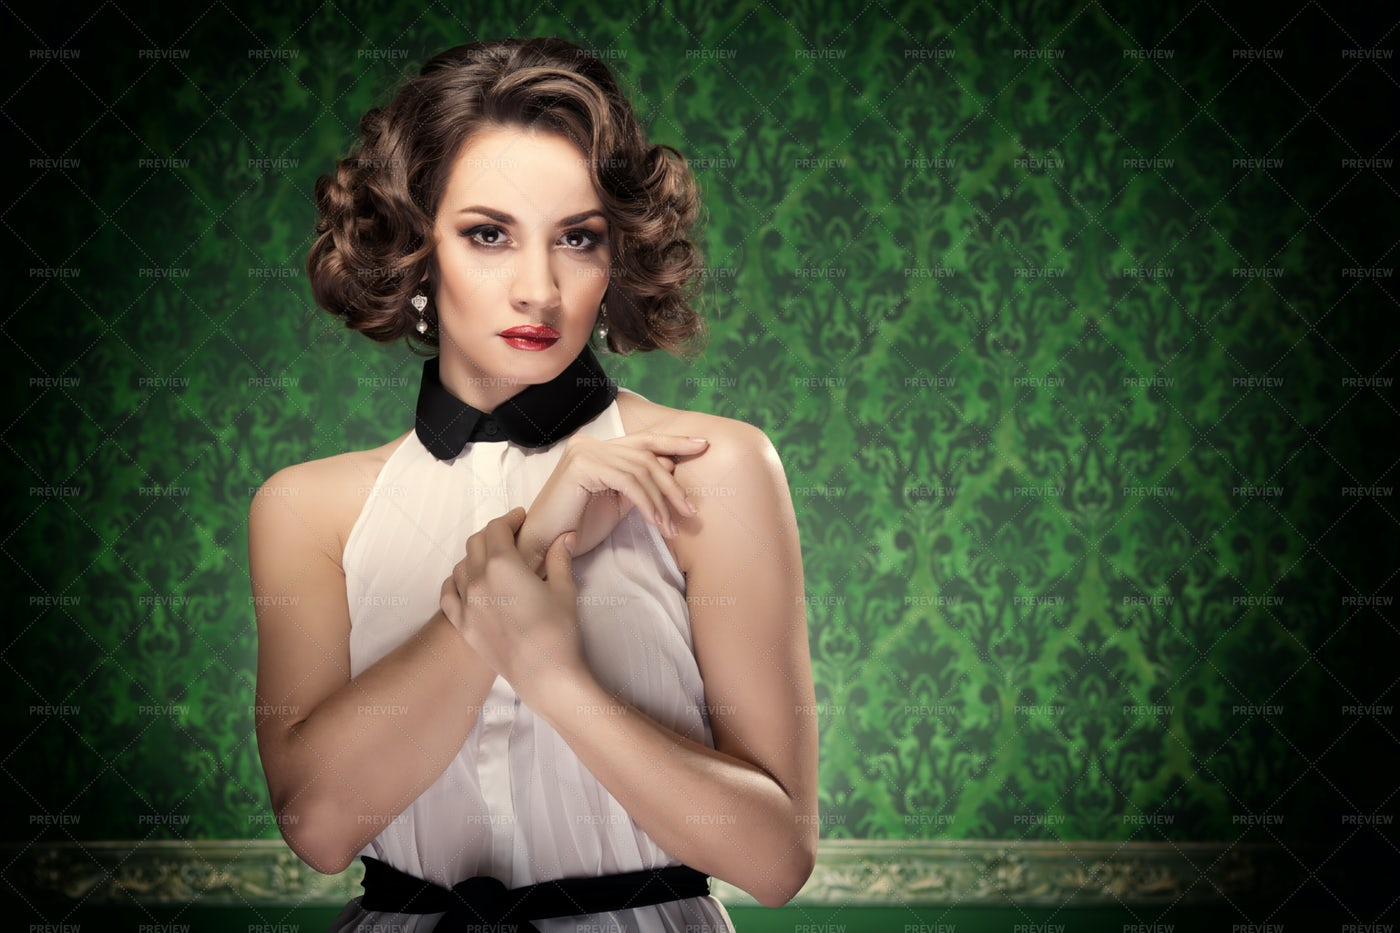 Woman In Vintage Inspired Look: Stock Photos